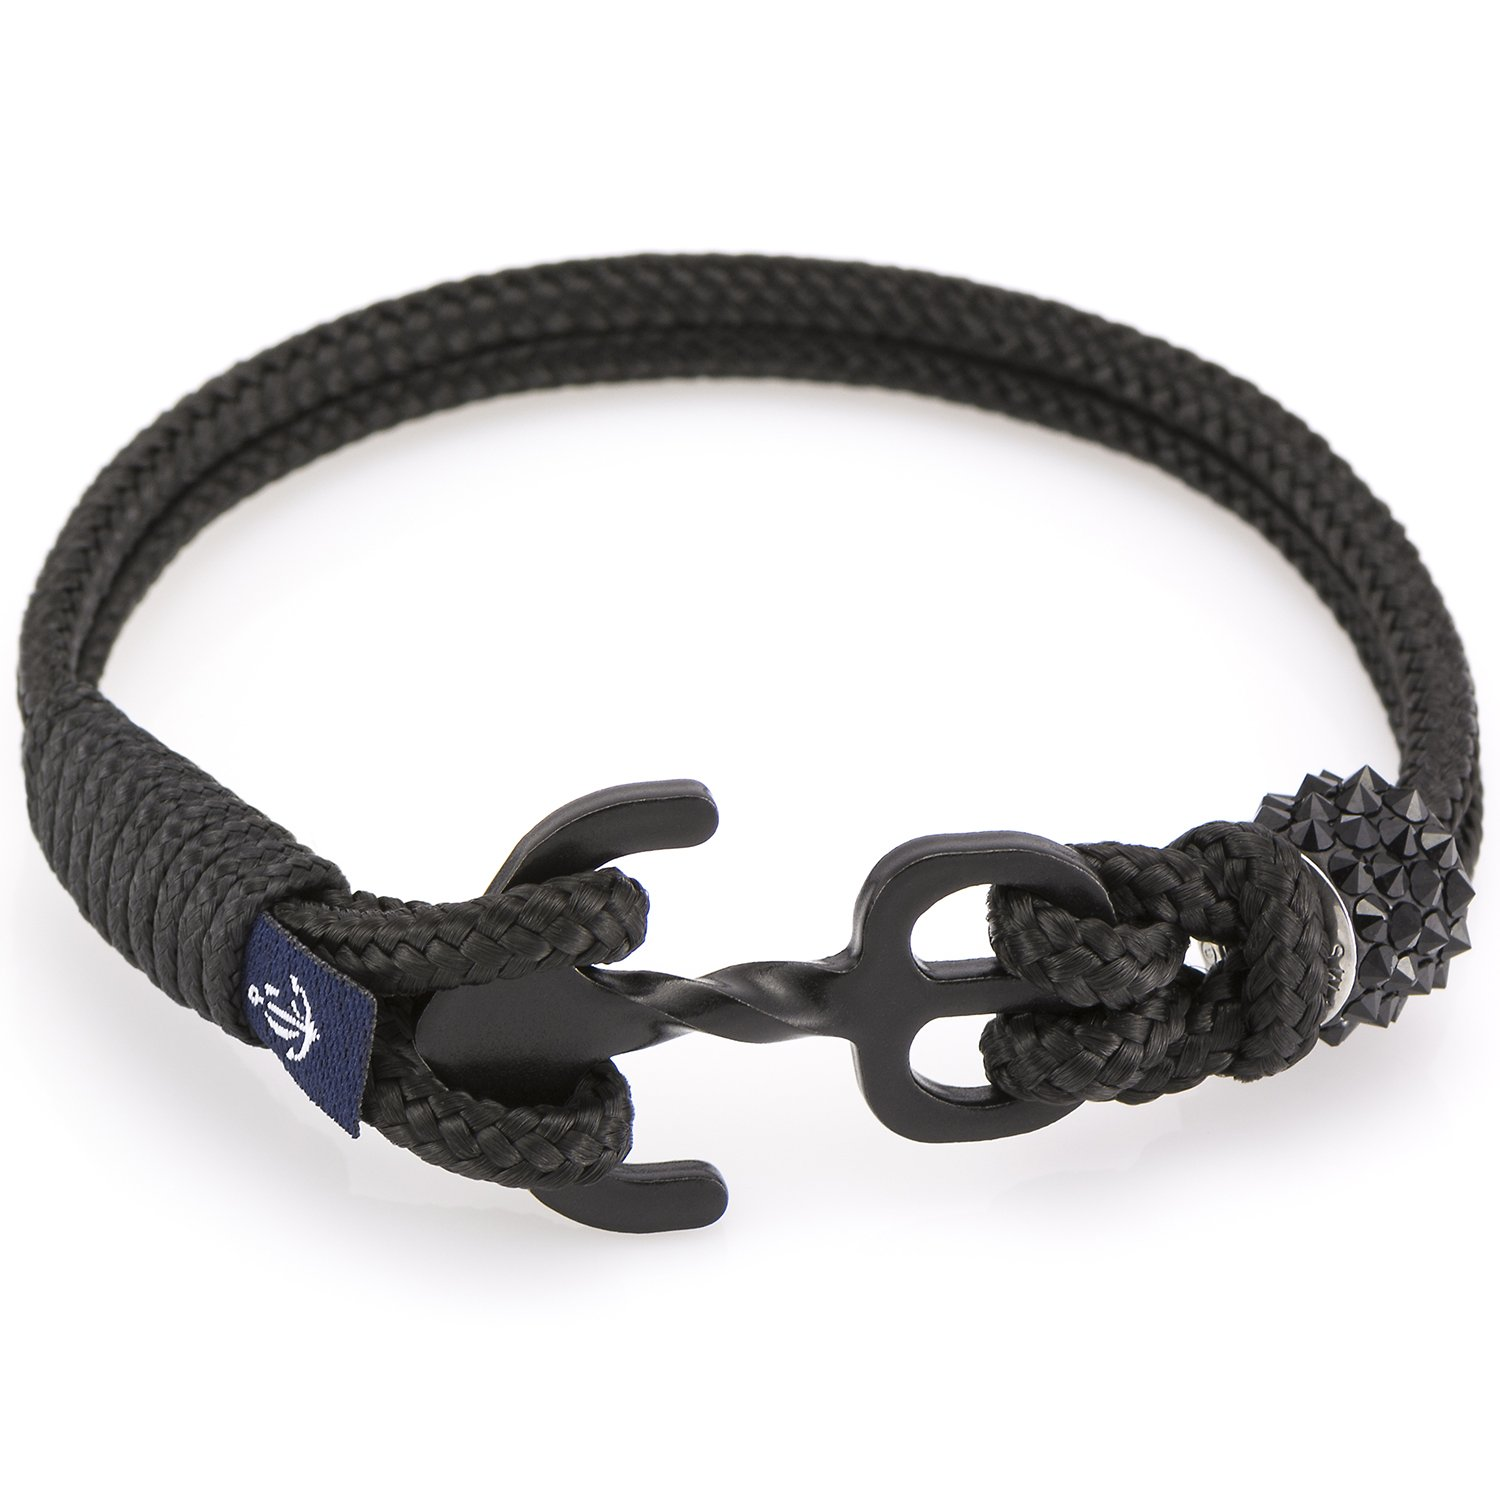 the rope thimble stainless steel whipped org end anchor knot paracord shackle ancg of nautical diy gaucho best wolverines clasp michigan and bracelet with ancgweb